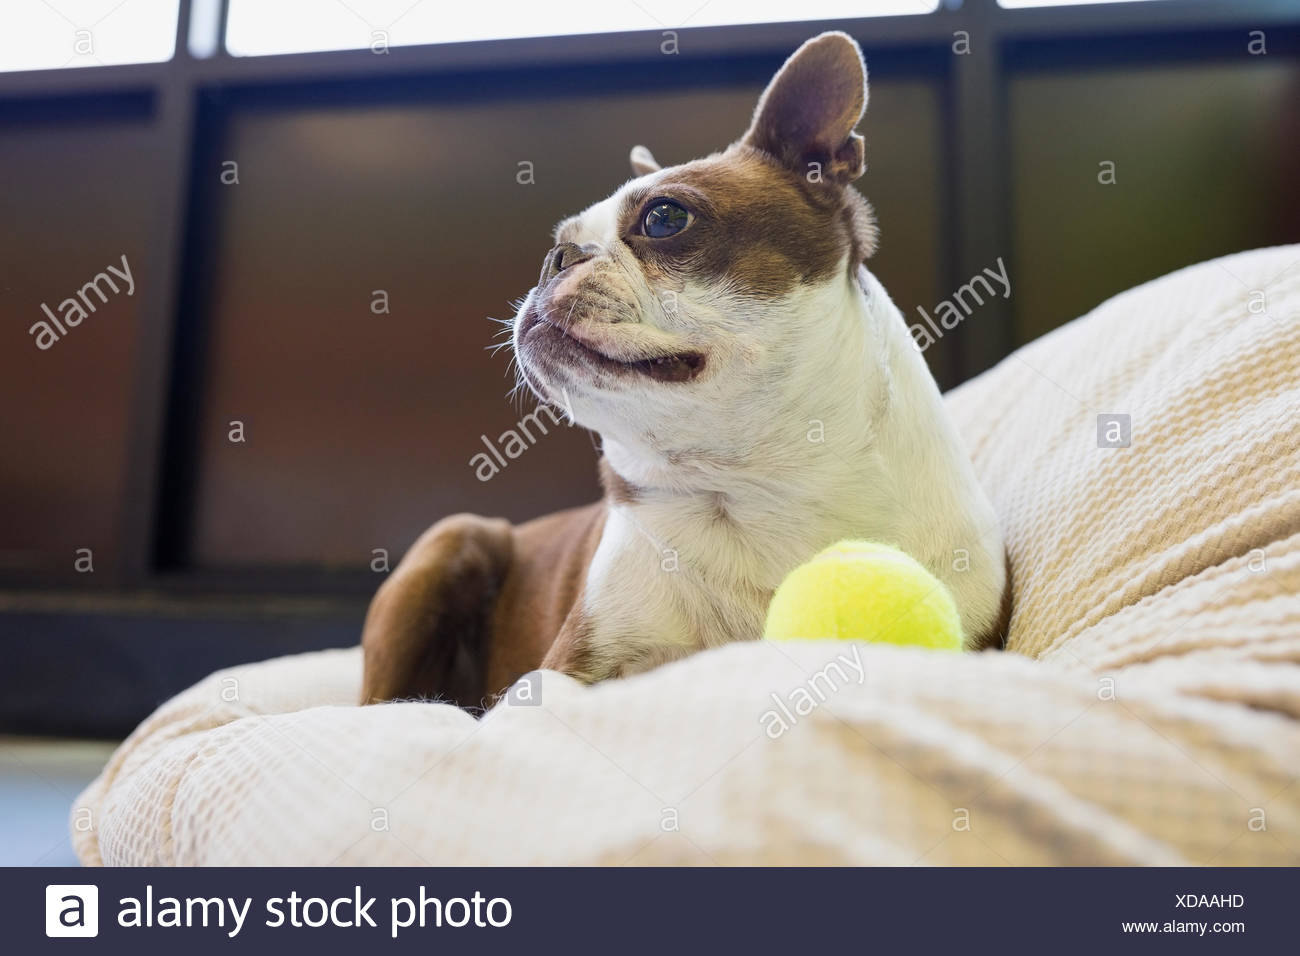 Boston Terrier with tennis ball looking away - Stock Image